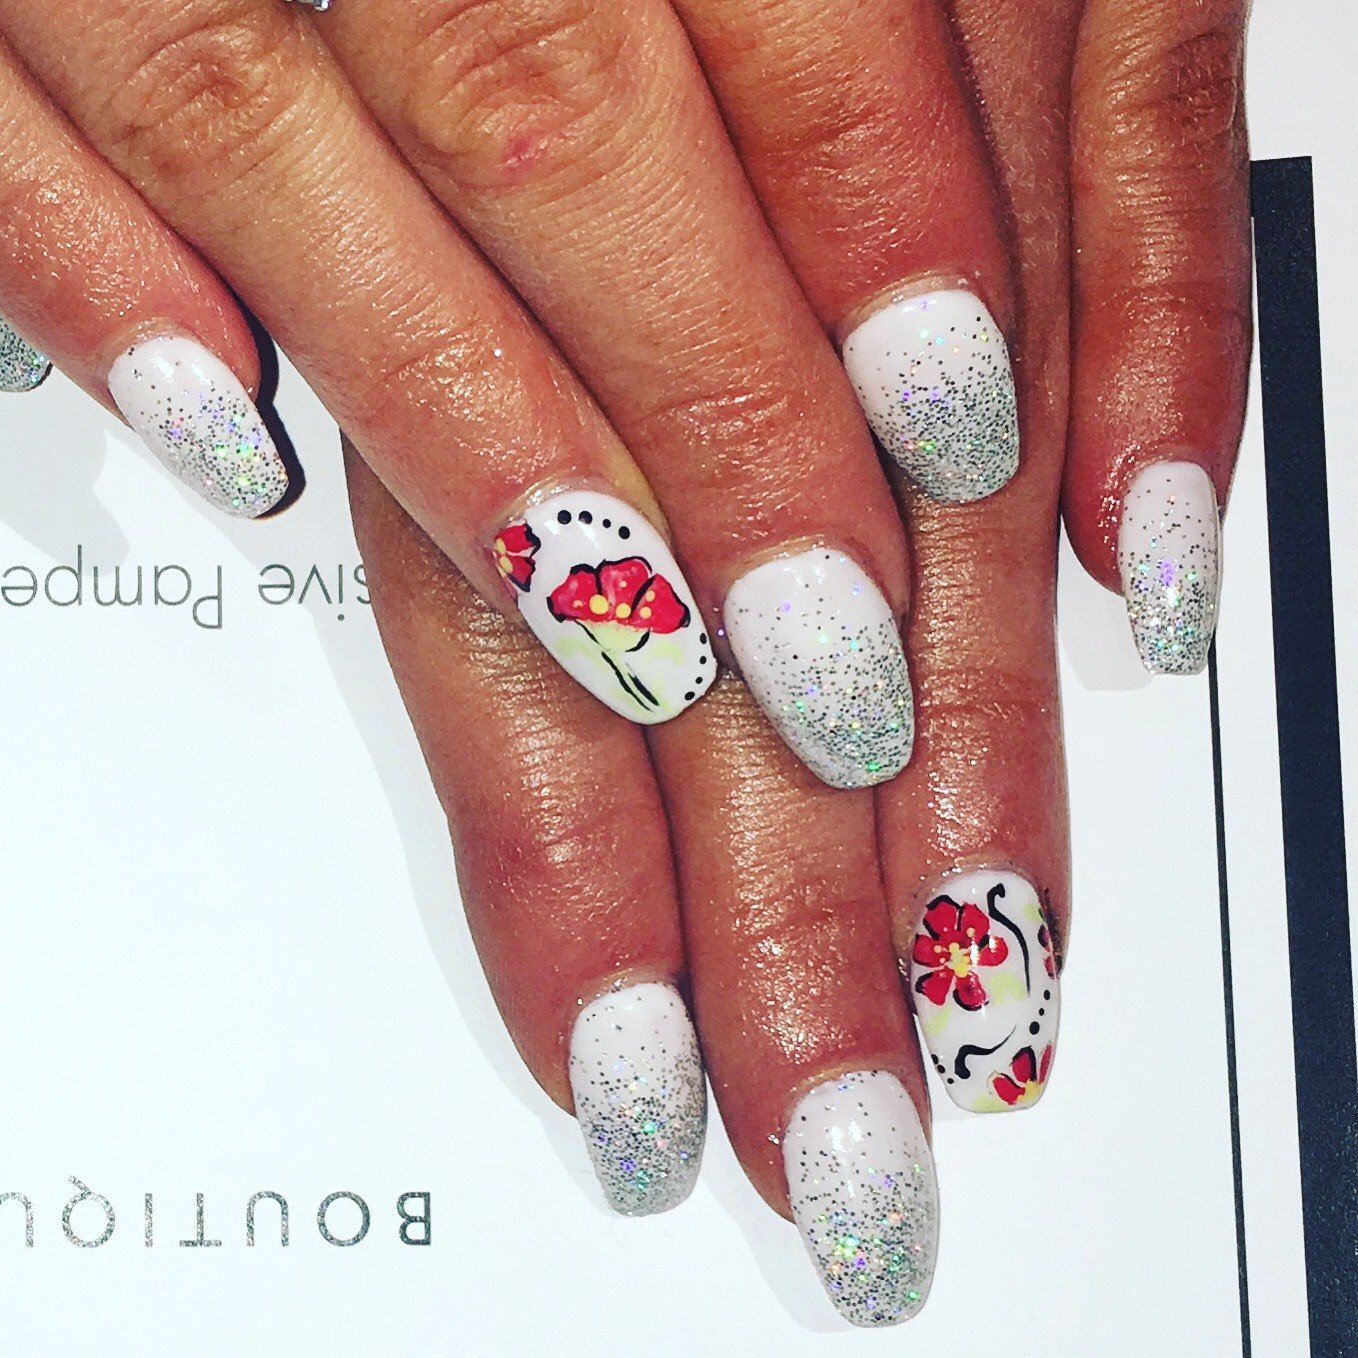 surrey nail art with glitter manicure